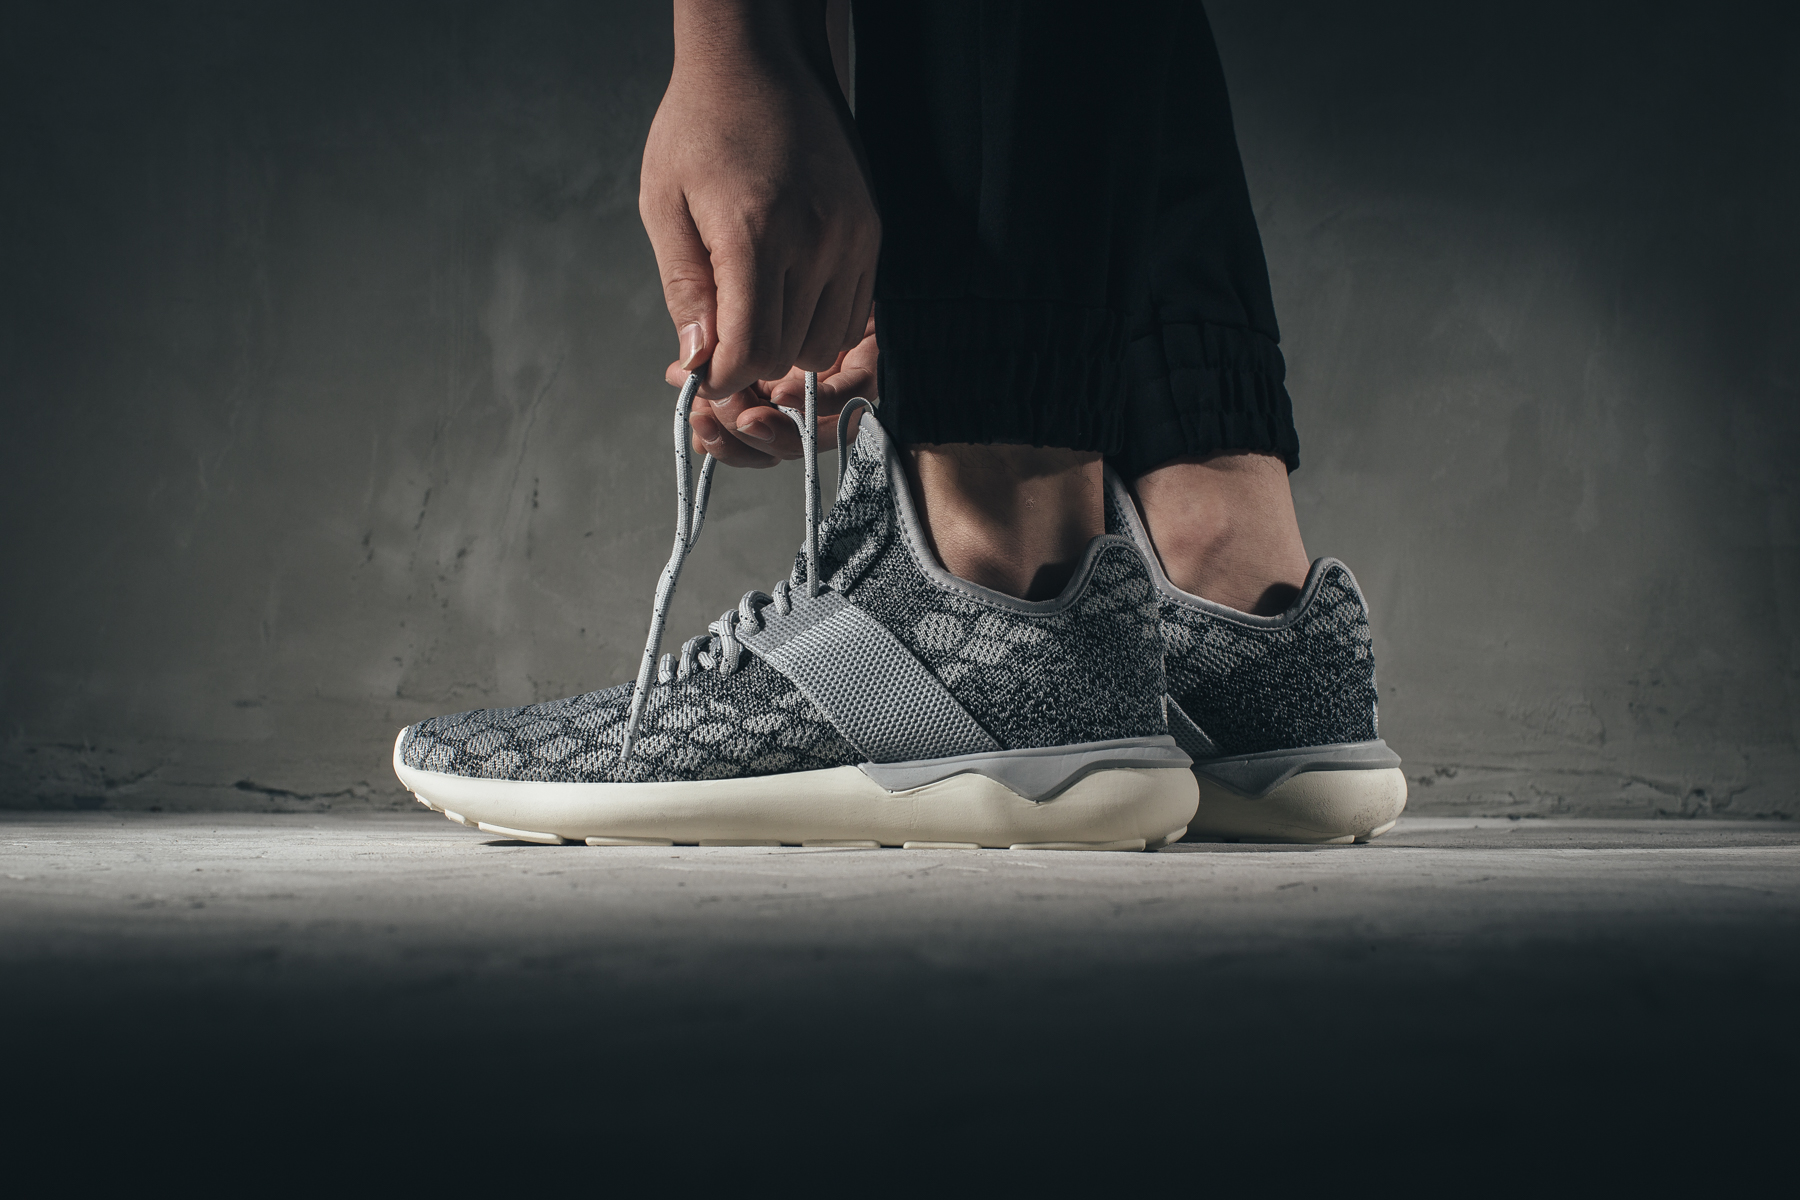 adidas Originals Tubular X 2.0 PK CQ1374 everysize